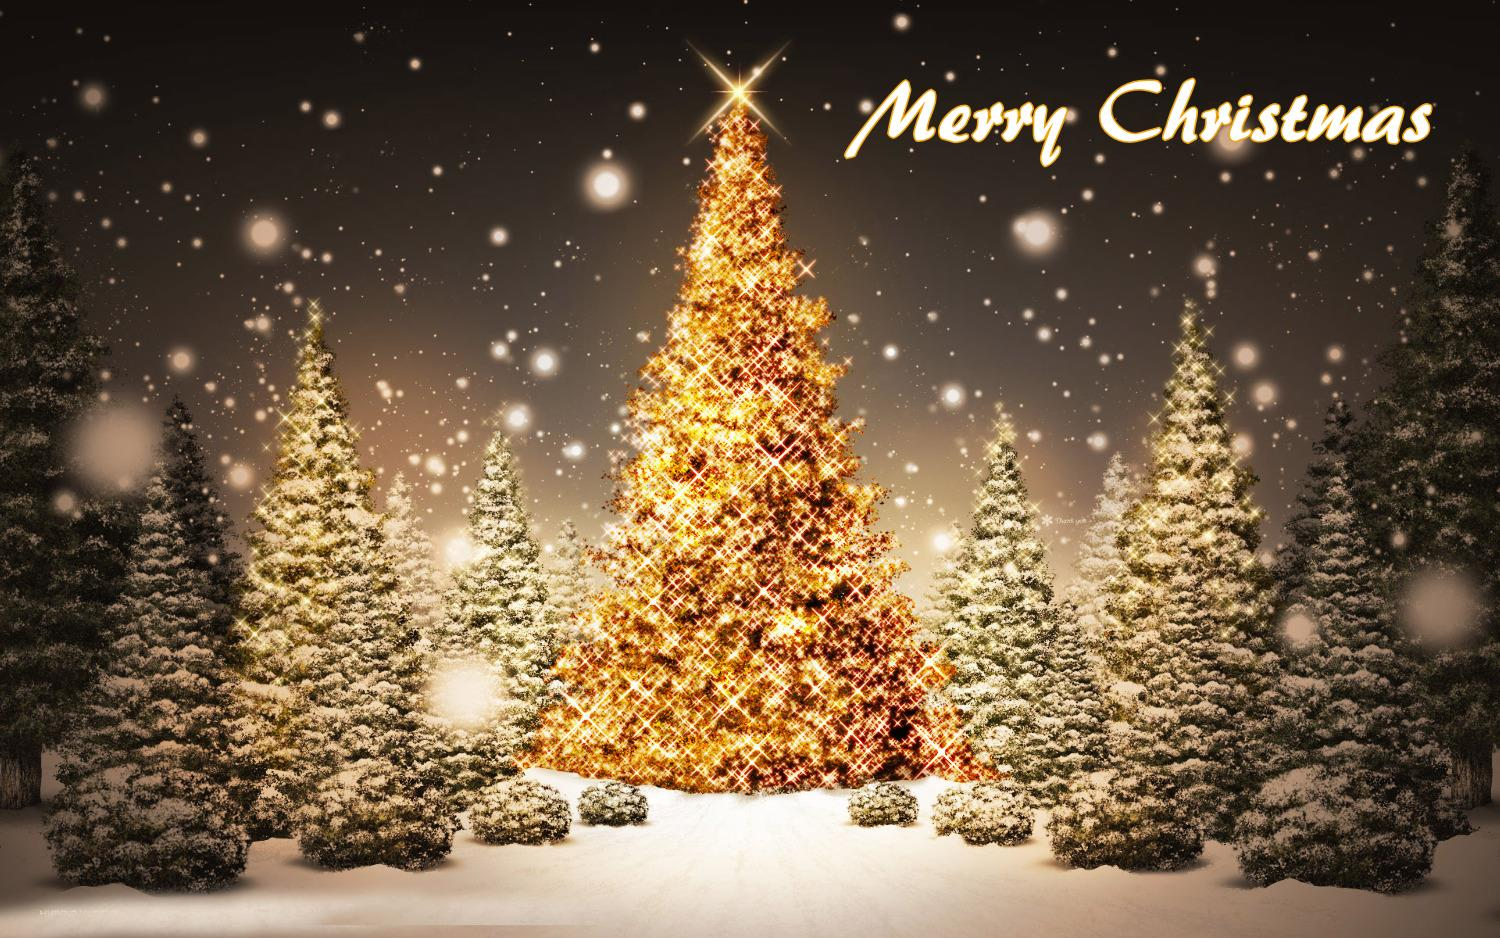 Merry Christmas tree free download wallpaper - 2017